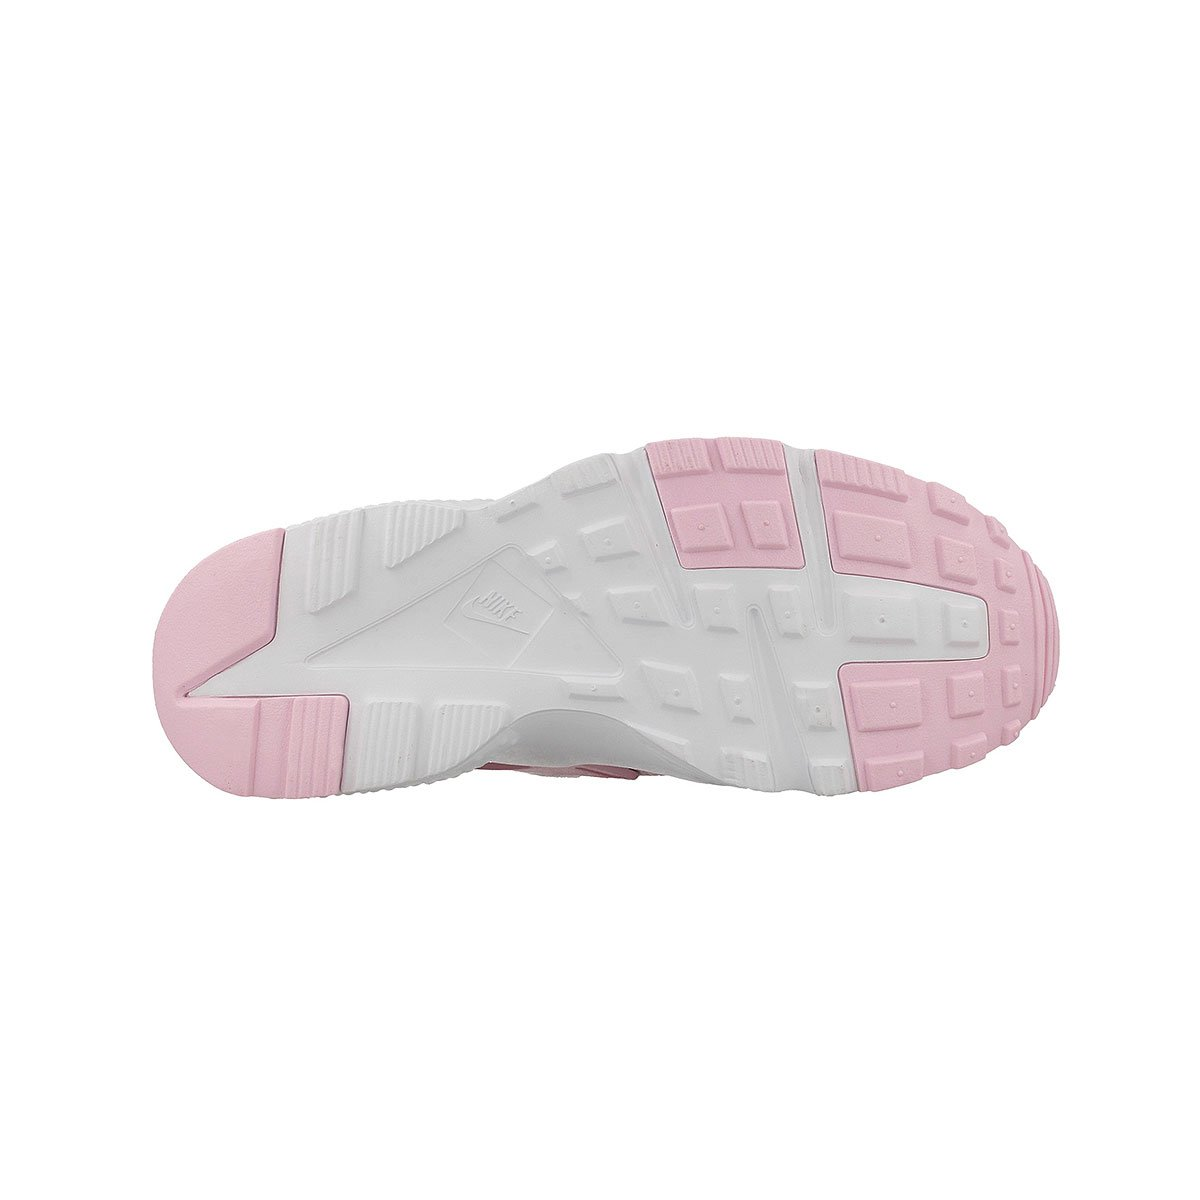 2c055467298f9 Nike - Huarache Run SE - 904538600 - Color  Pink-White - Size  3. 5  Buy  Online at Low Prices in India - Amazon.in